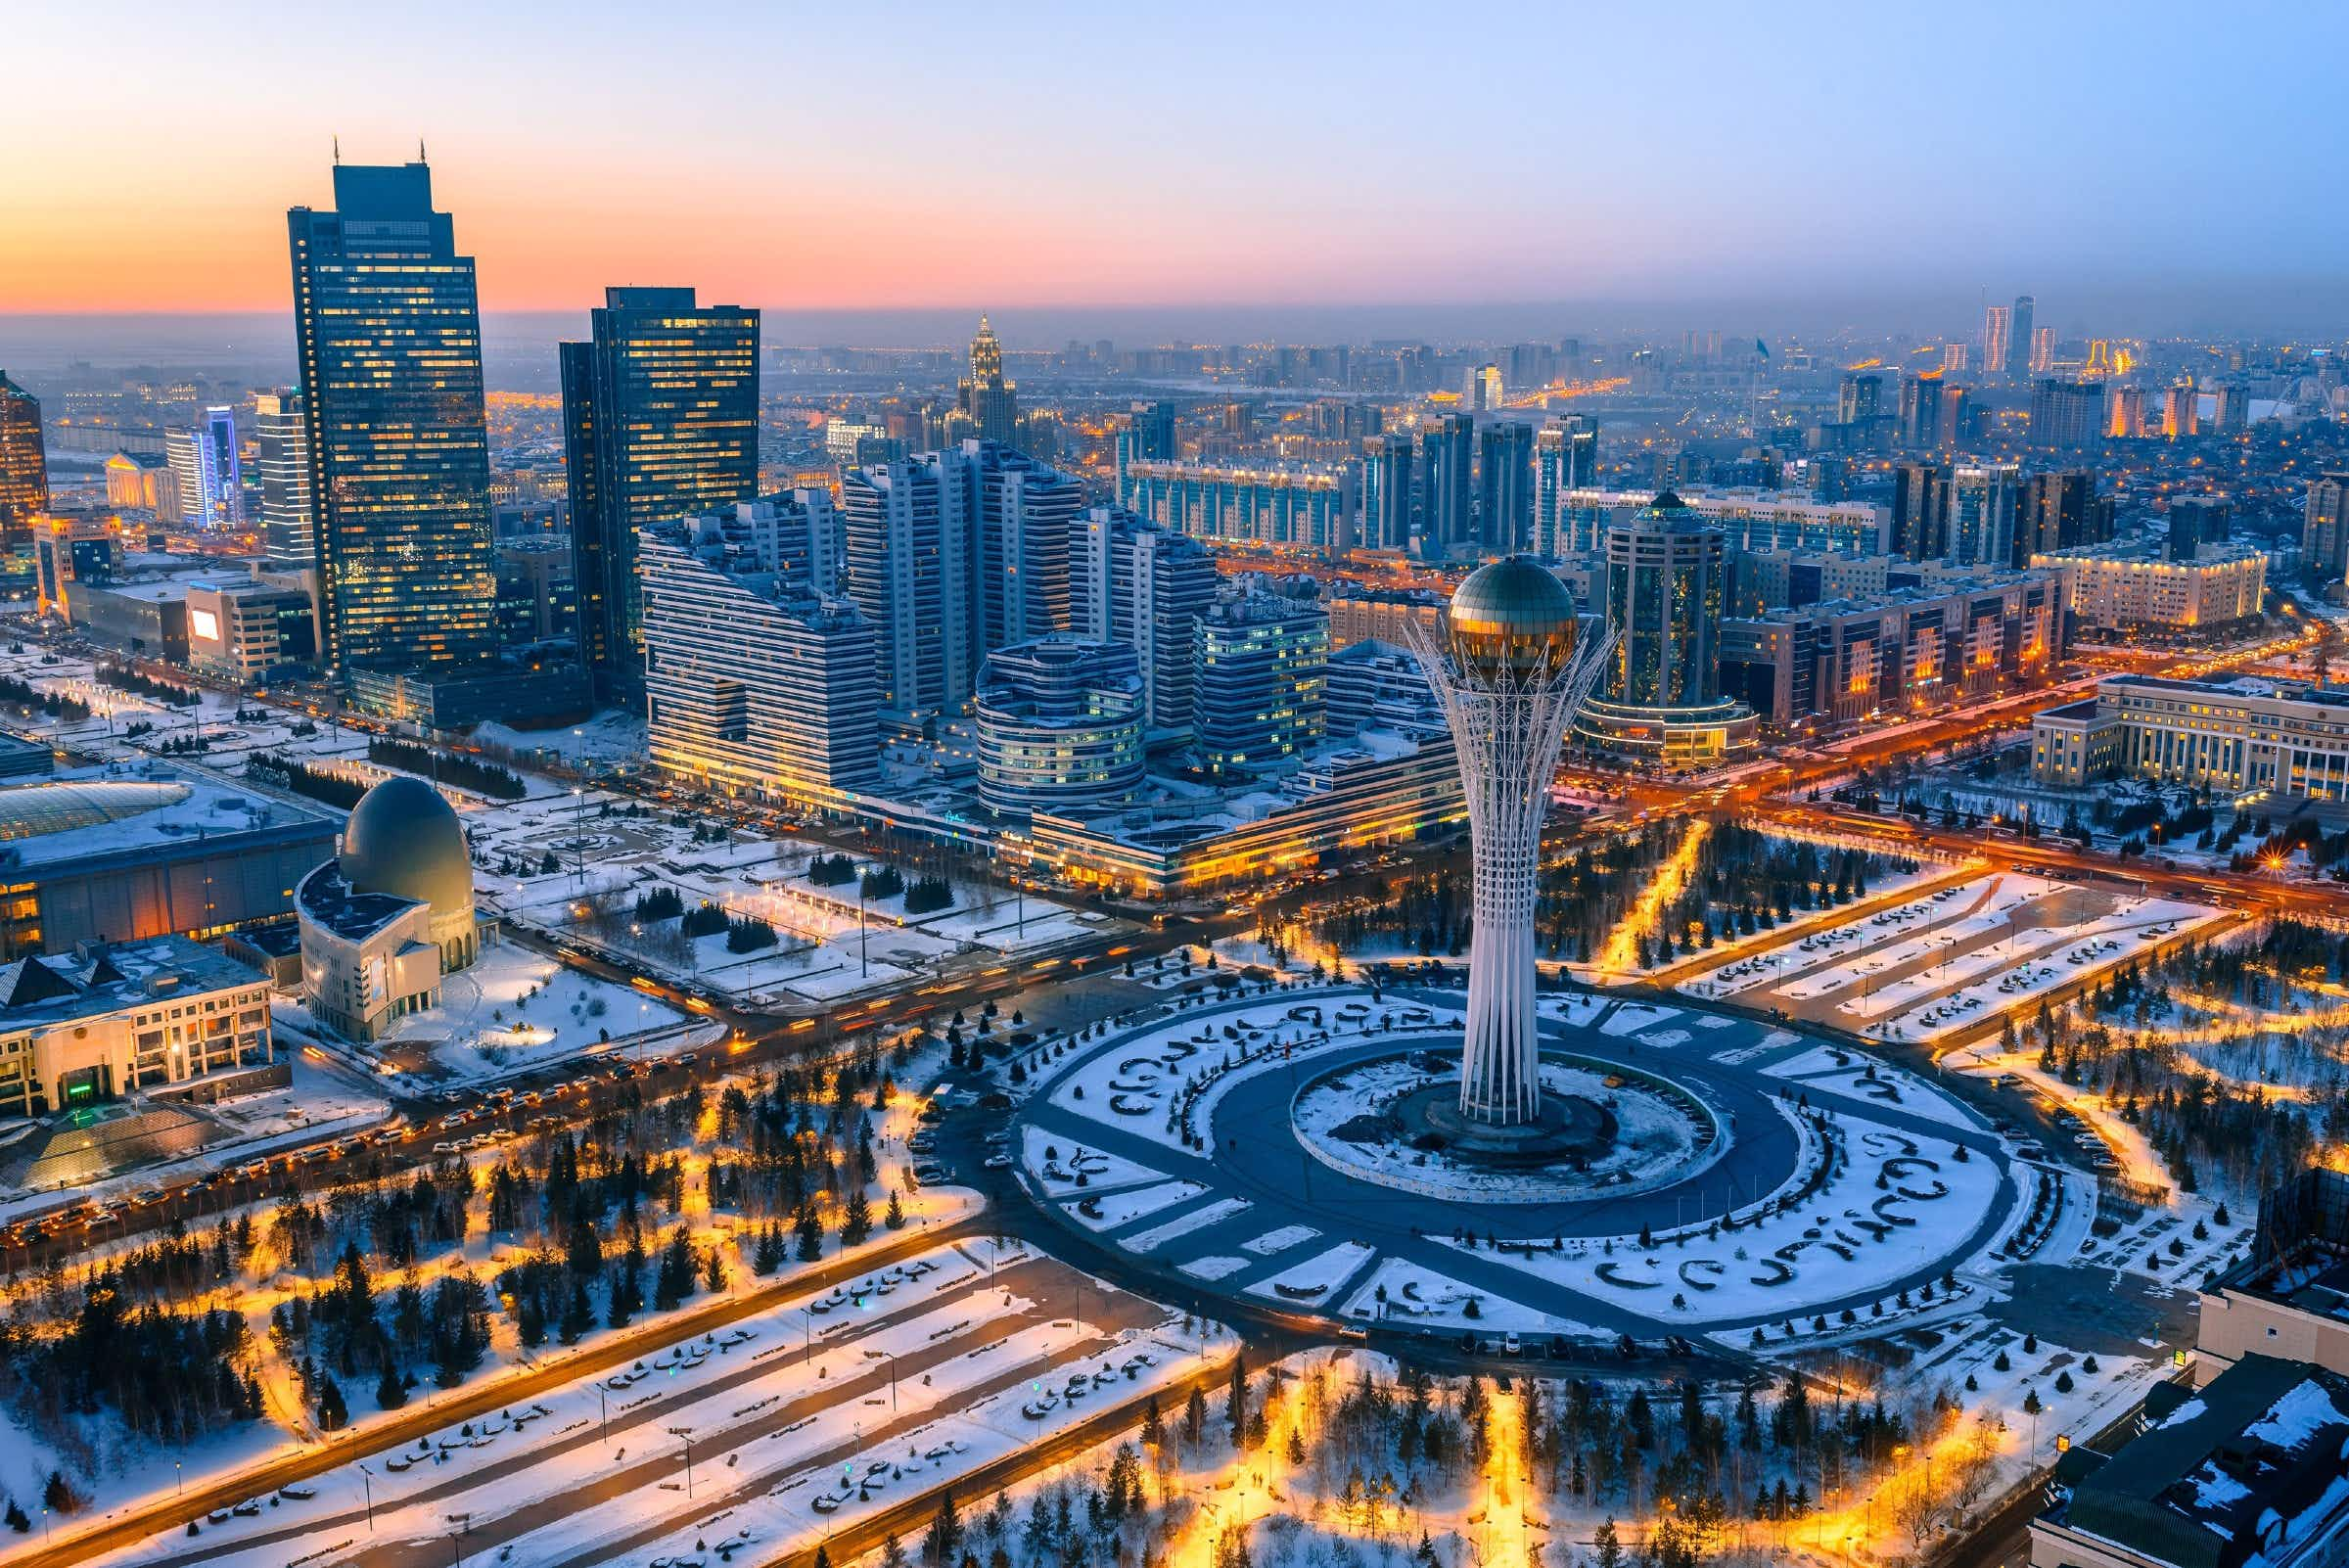 Go on a mystery adventure from Astana to Ulaanbaatar